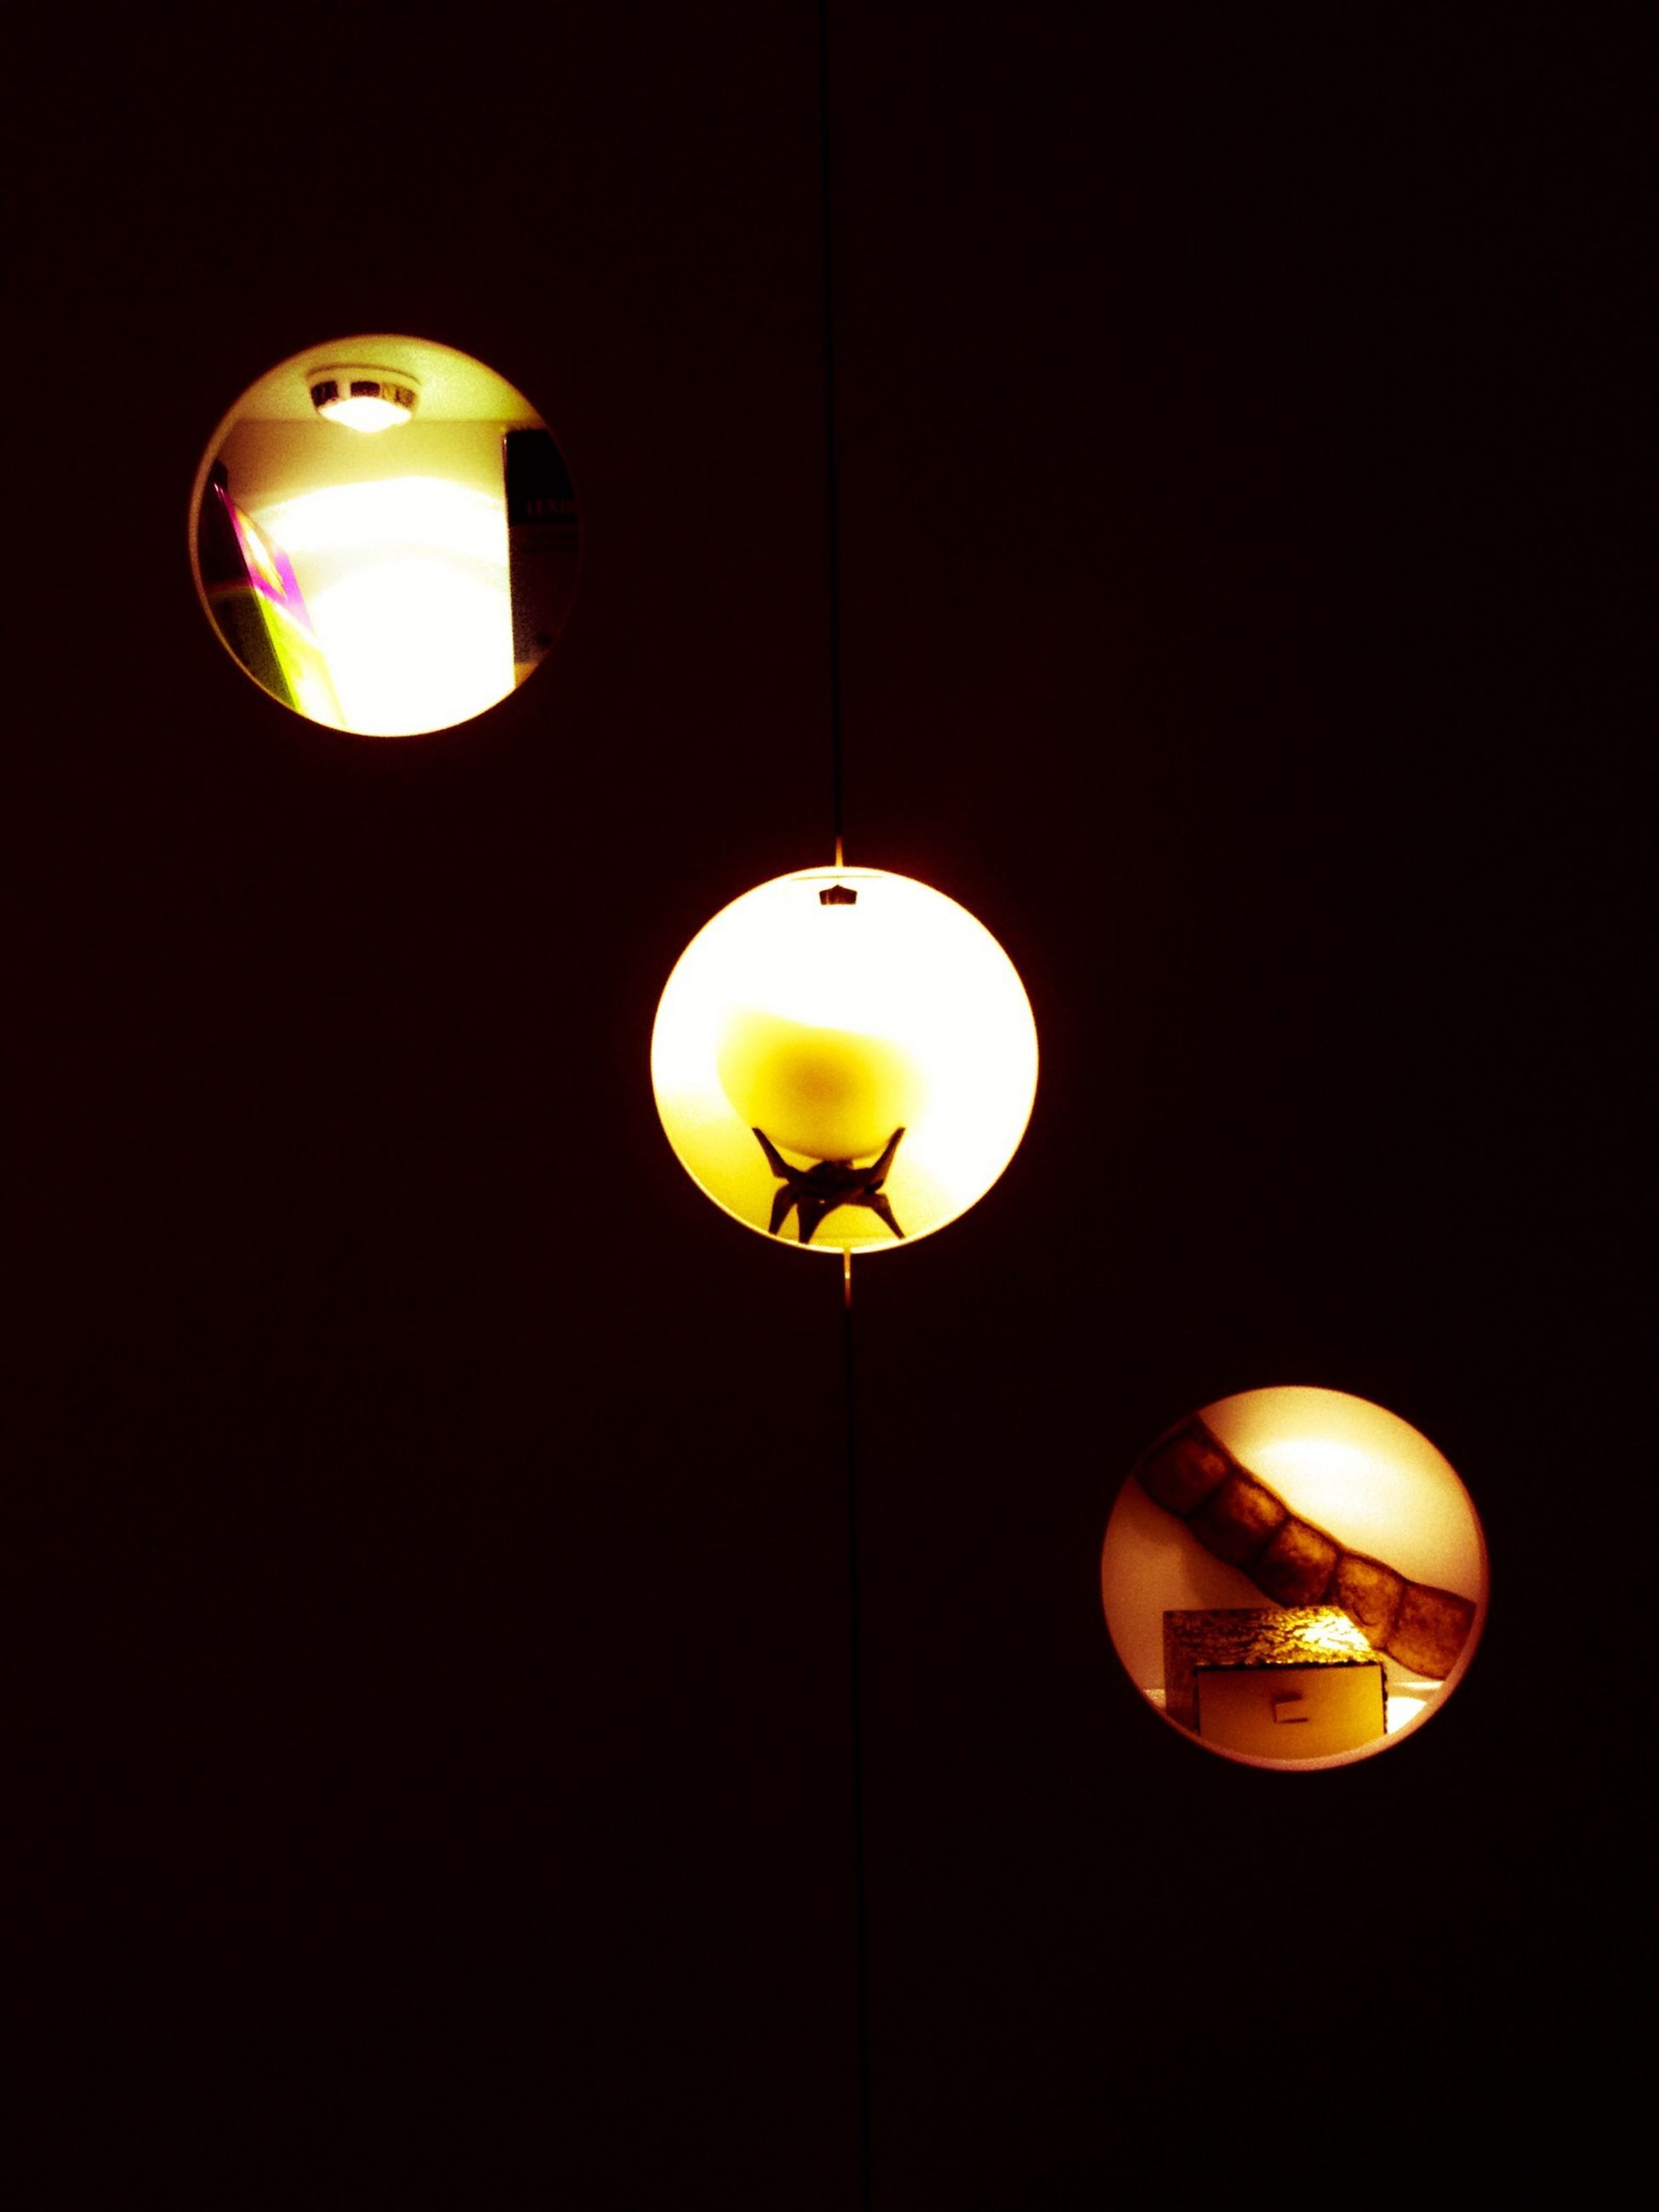 illuminated, lighting equipment, electricity, low angle view, hanging, electric lamp, electric light, light bulb, decoration, lantern, glowing, night, indoors, lamp, copy space, ceiling, light - natural phenomenon, yellow, street light, lit